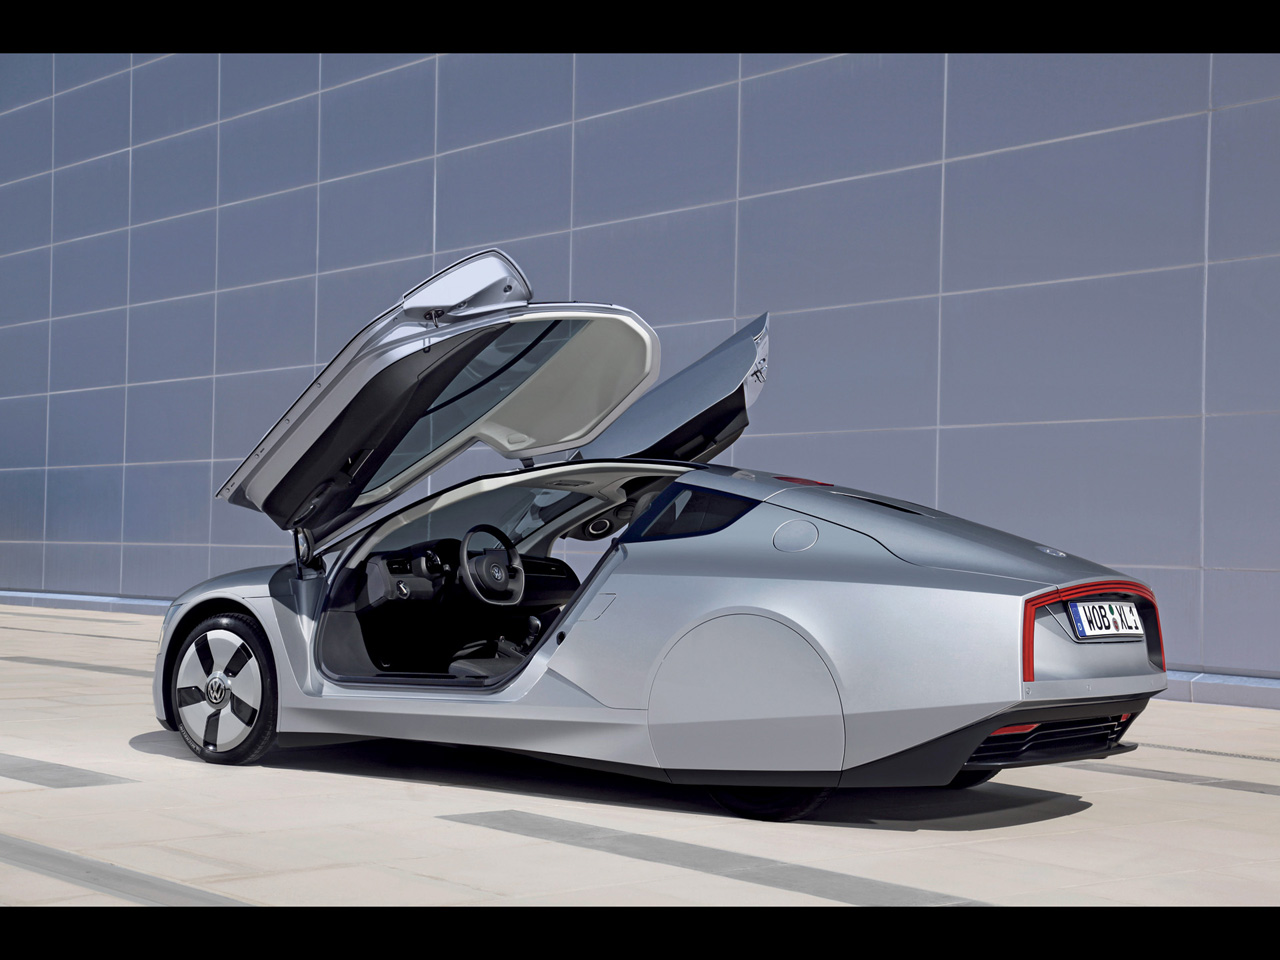 2011 Volkswagen XL1 Concept || Car Specifications ; Car Prices ; Car ...